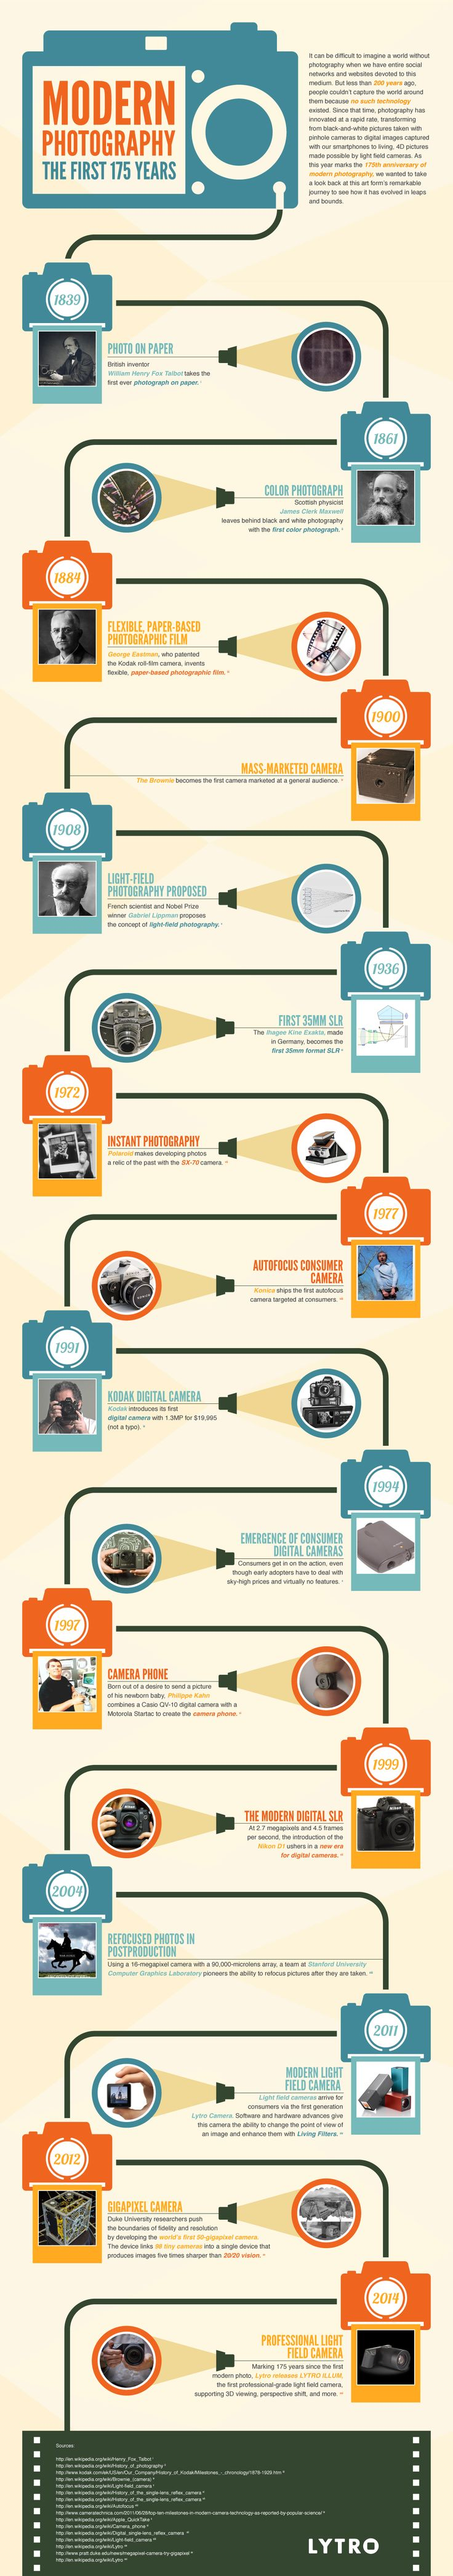 25+ best ideas about History of photography timeline on Pinterest ...